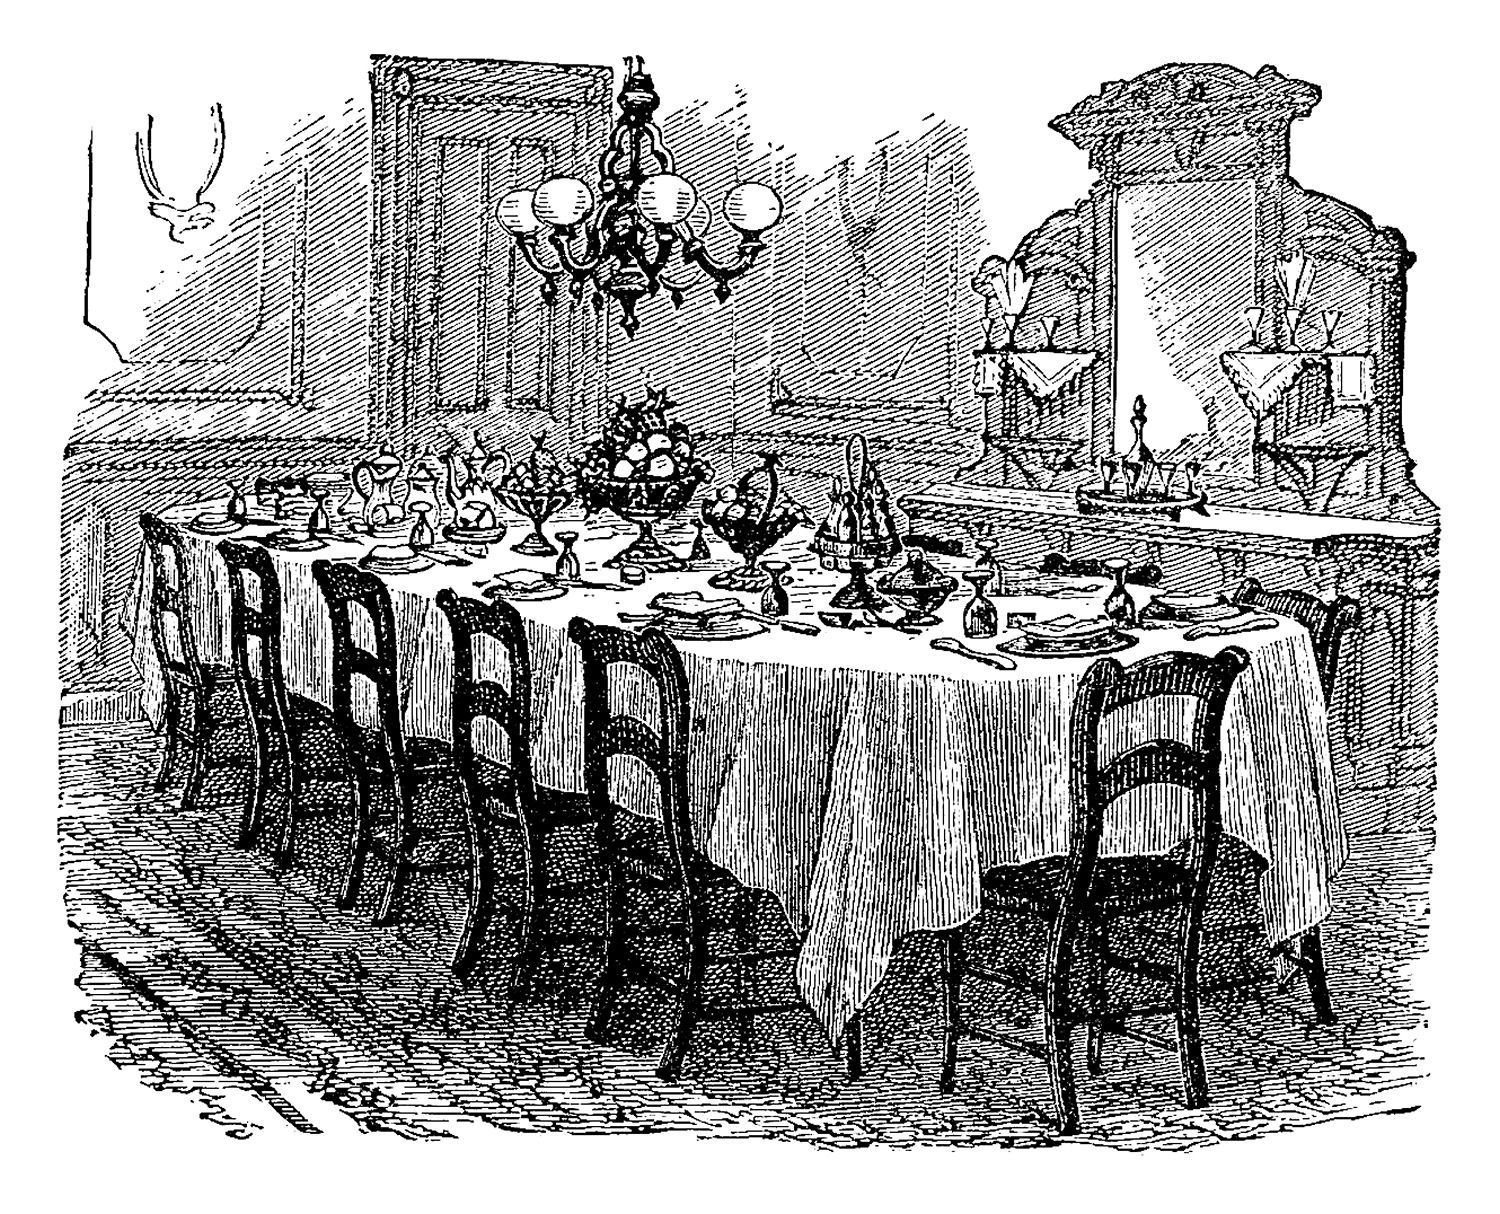 dining room clipart black and white - photo #38